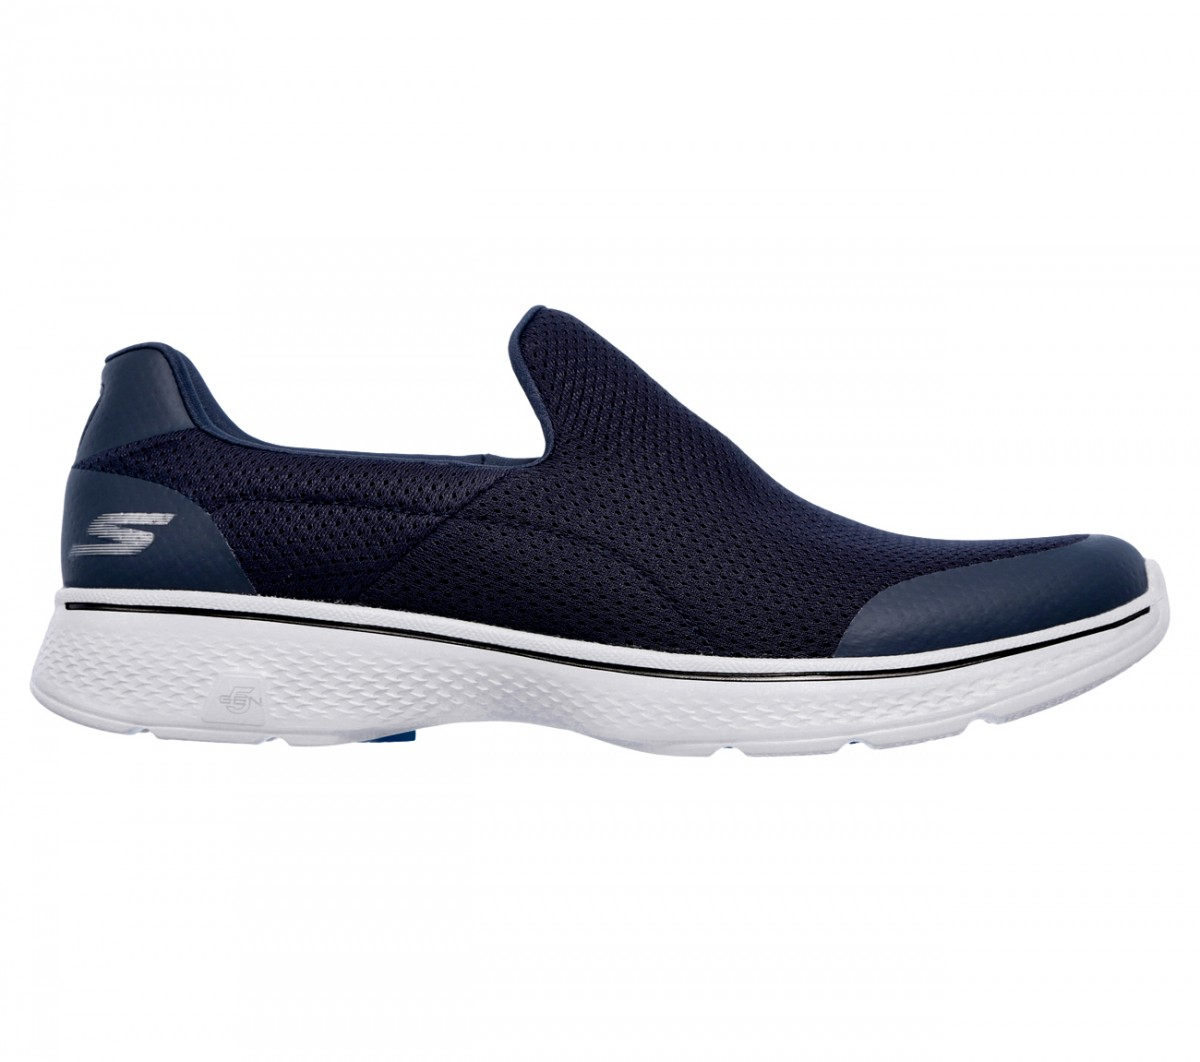 878545c9e04 Bizz Store - Tênis Masculino Skechers Go Walk 4 Incredible